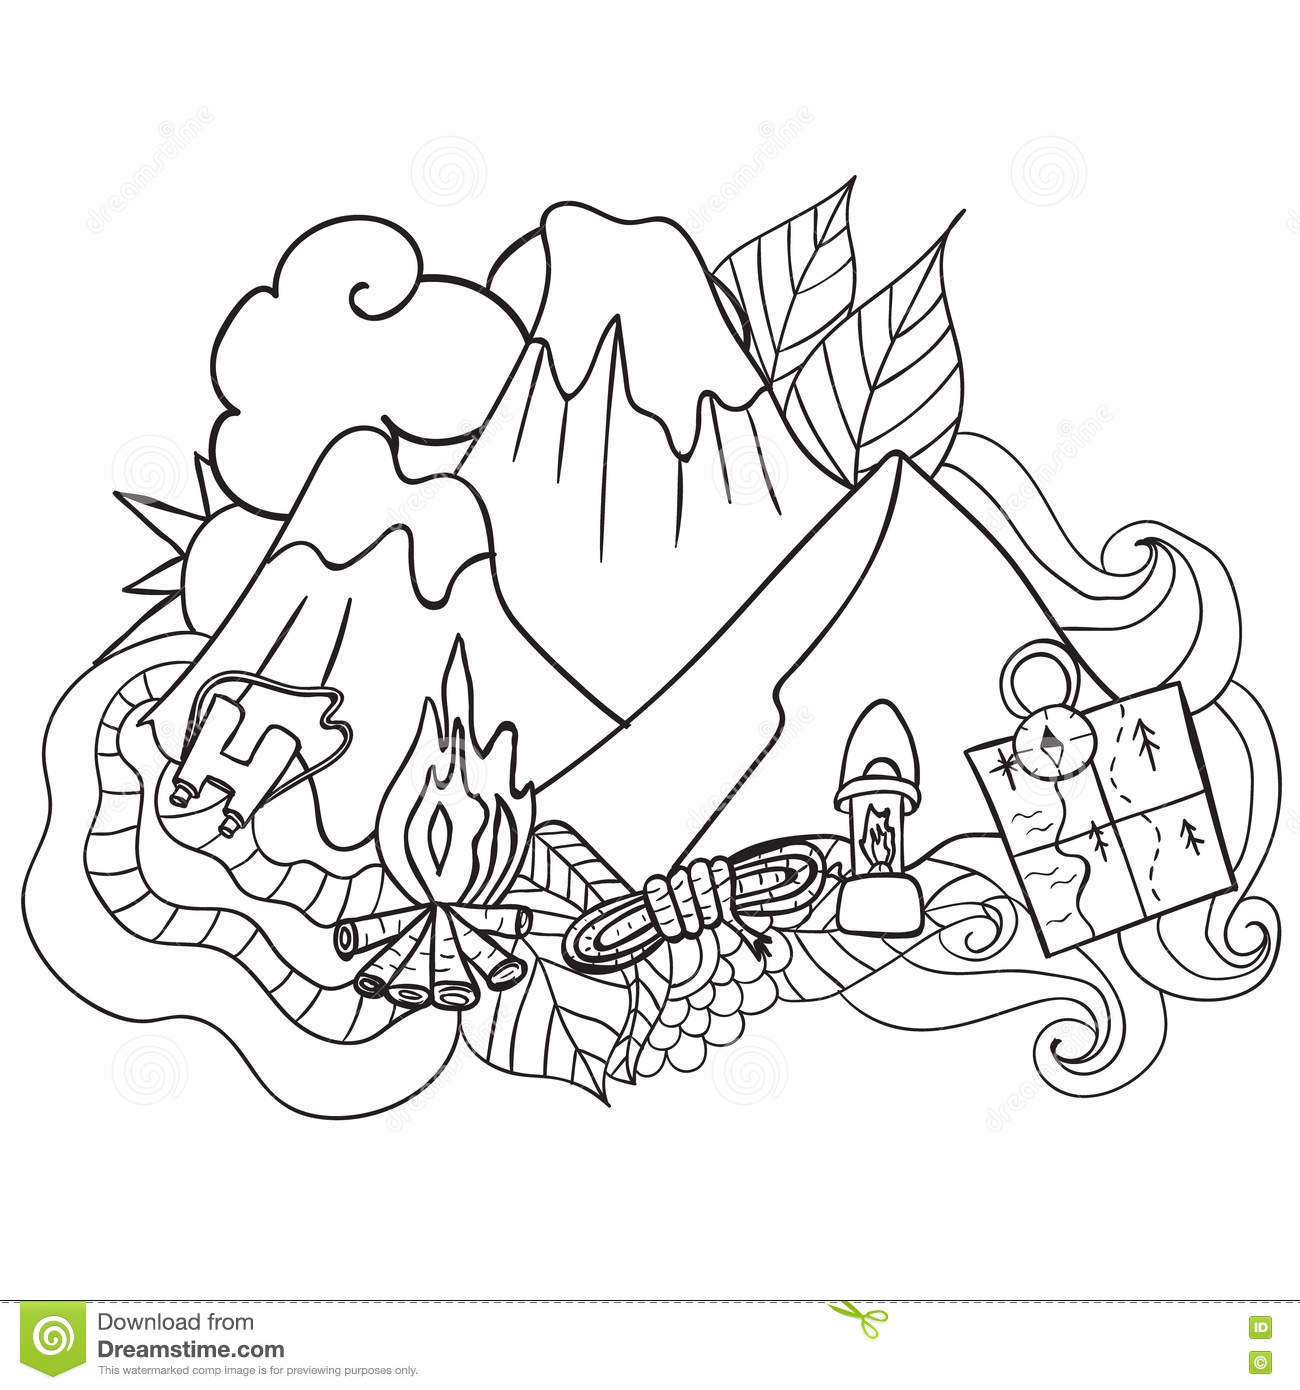 Recreation Tourism And Camping Hand Drawn Doodle Elements Vector Illustration Travel